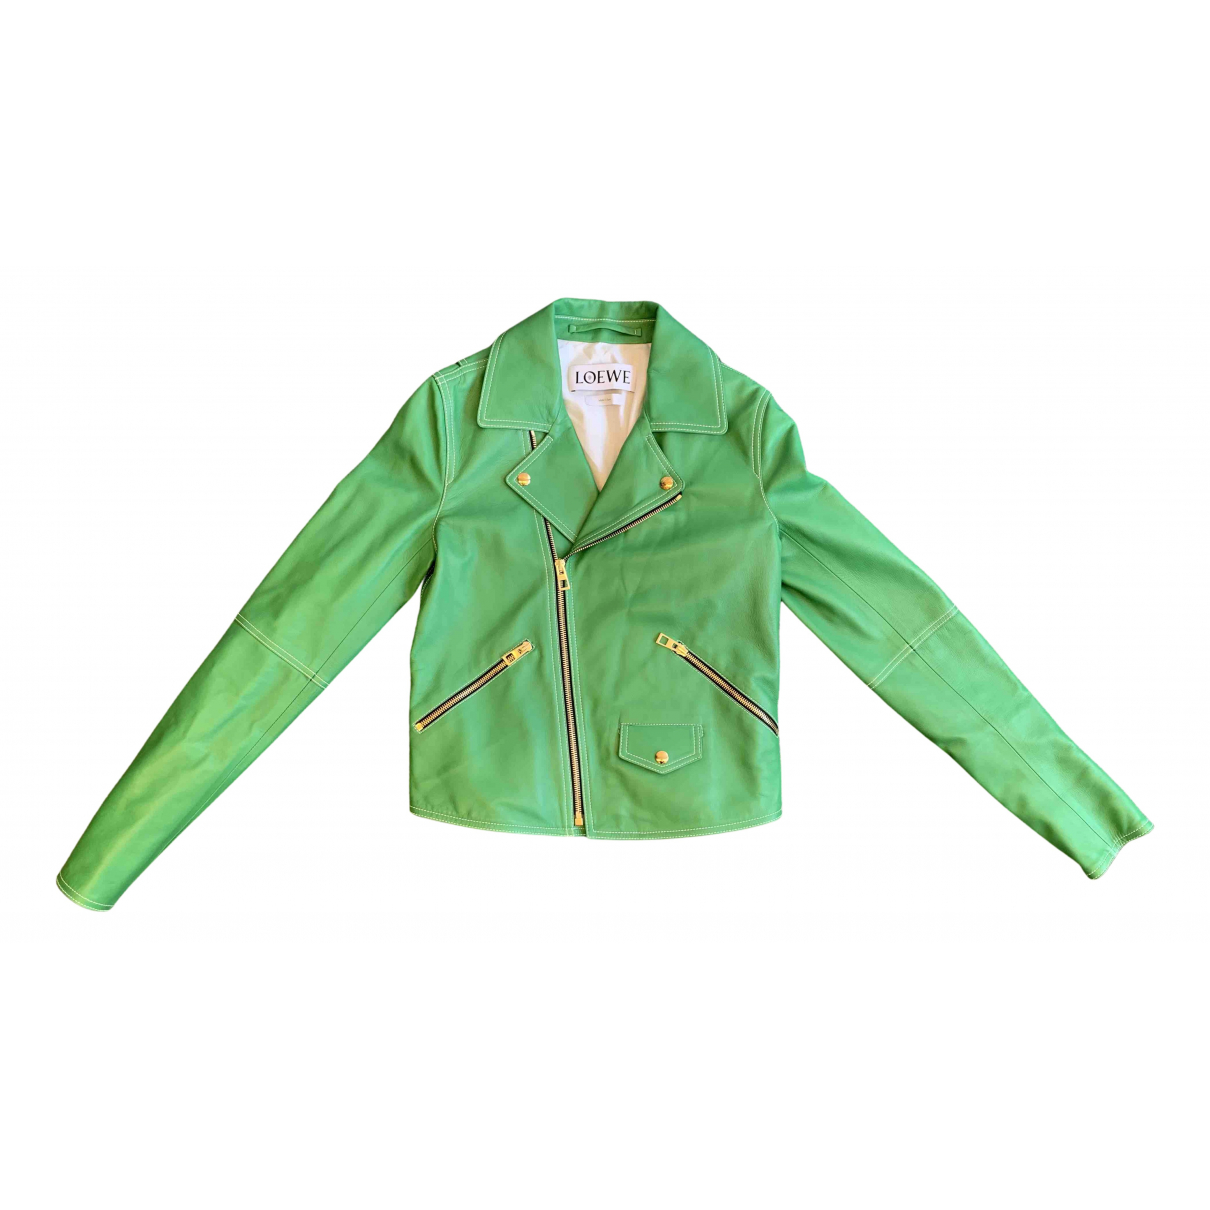 Loewe N Green Leather Leather jacket for Women 34 FR